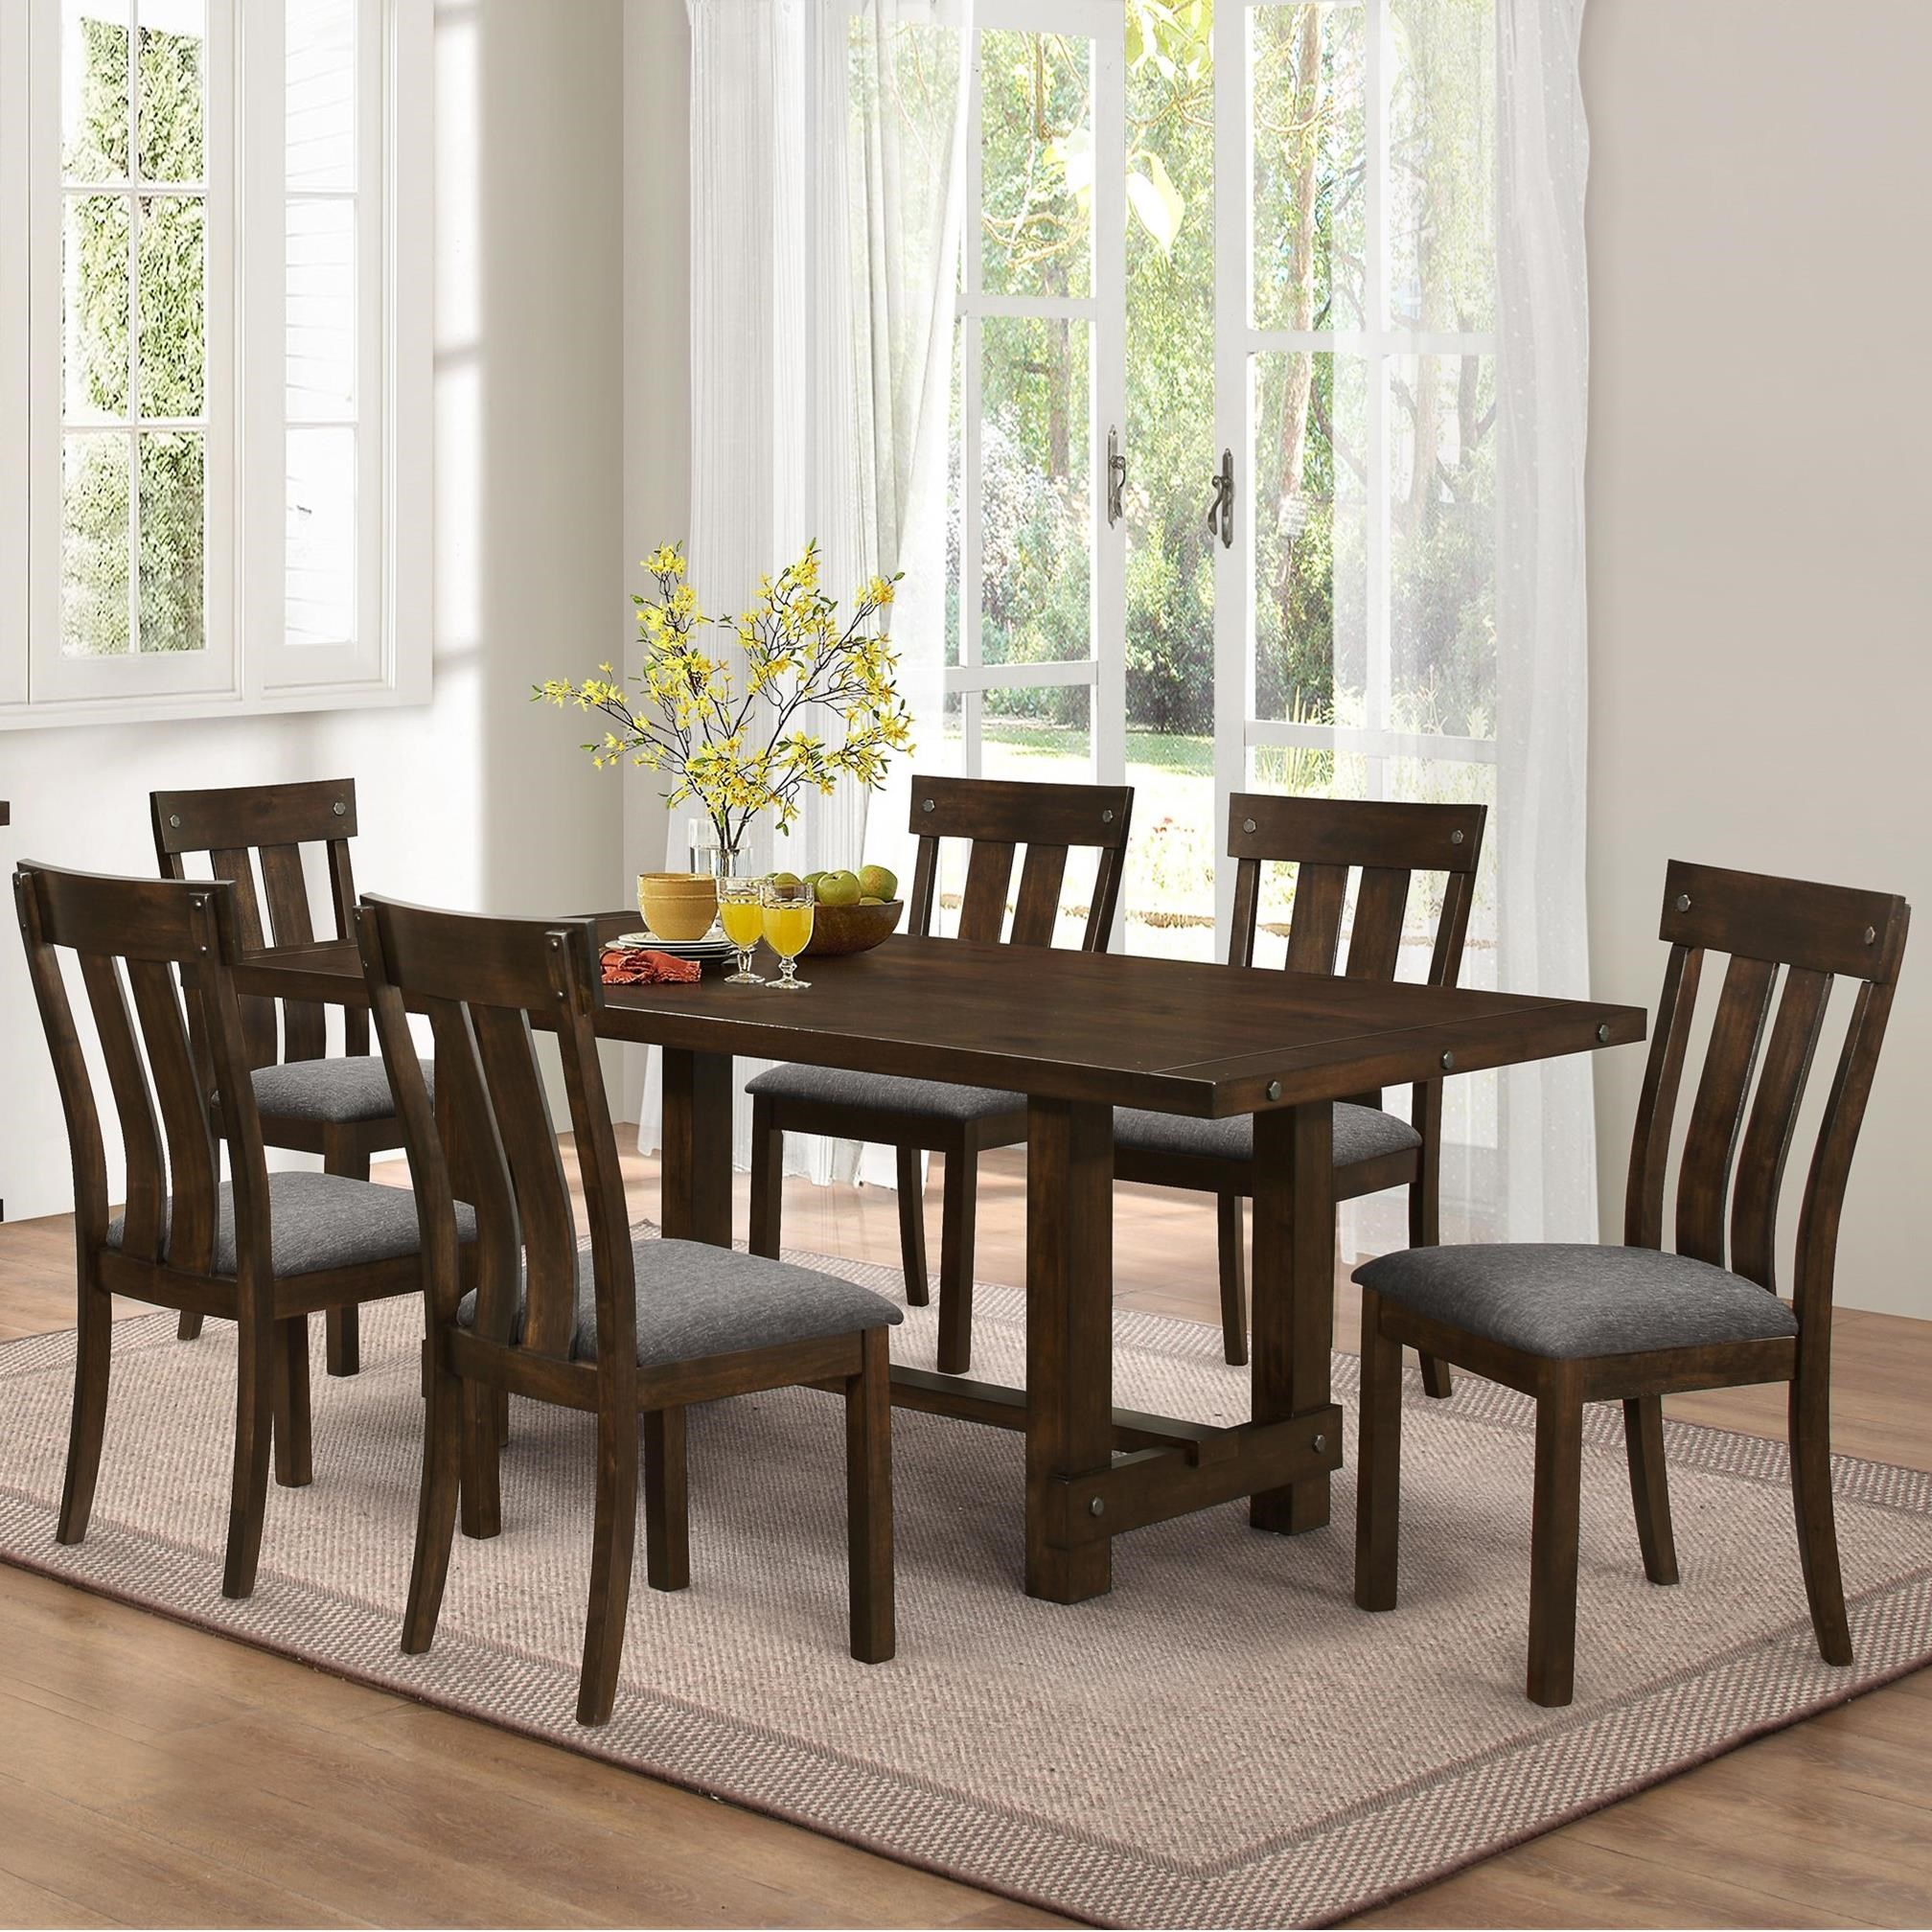 Frisco Rectangular Standard Dining Table in Antique